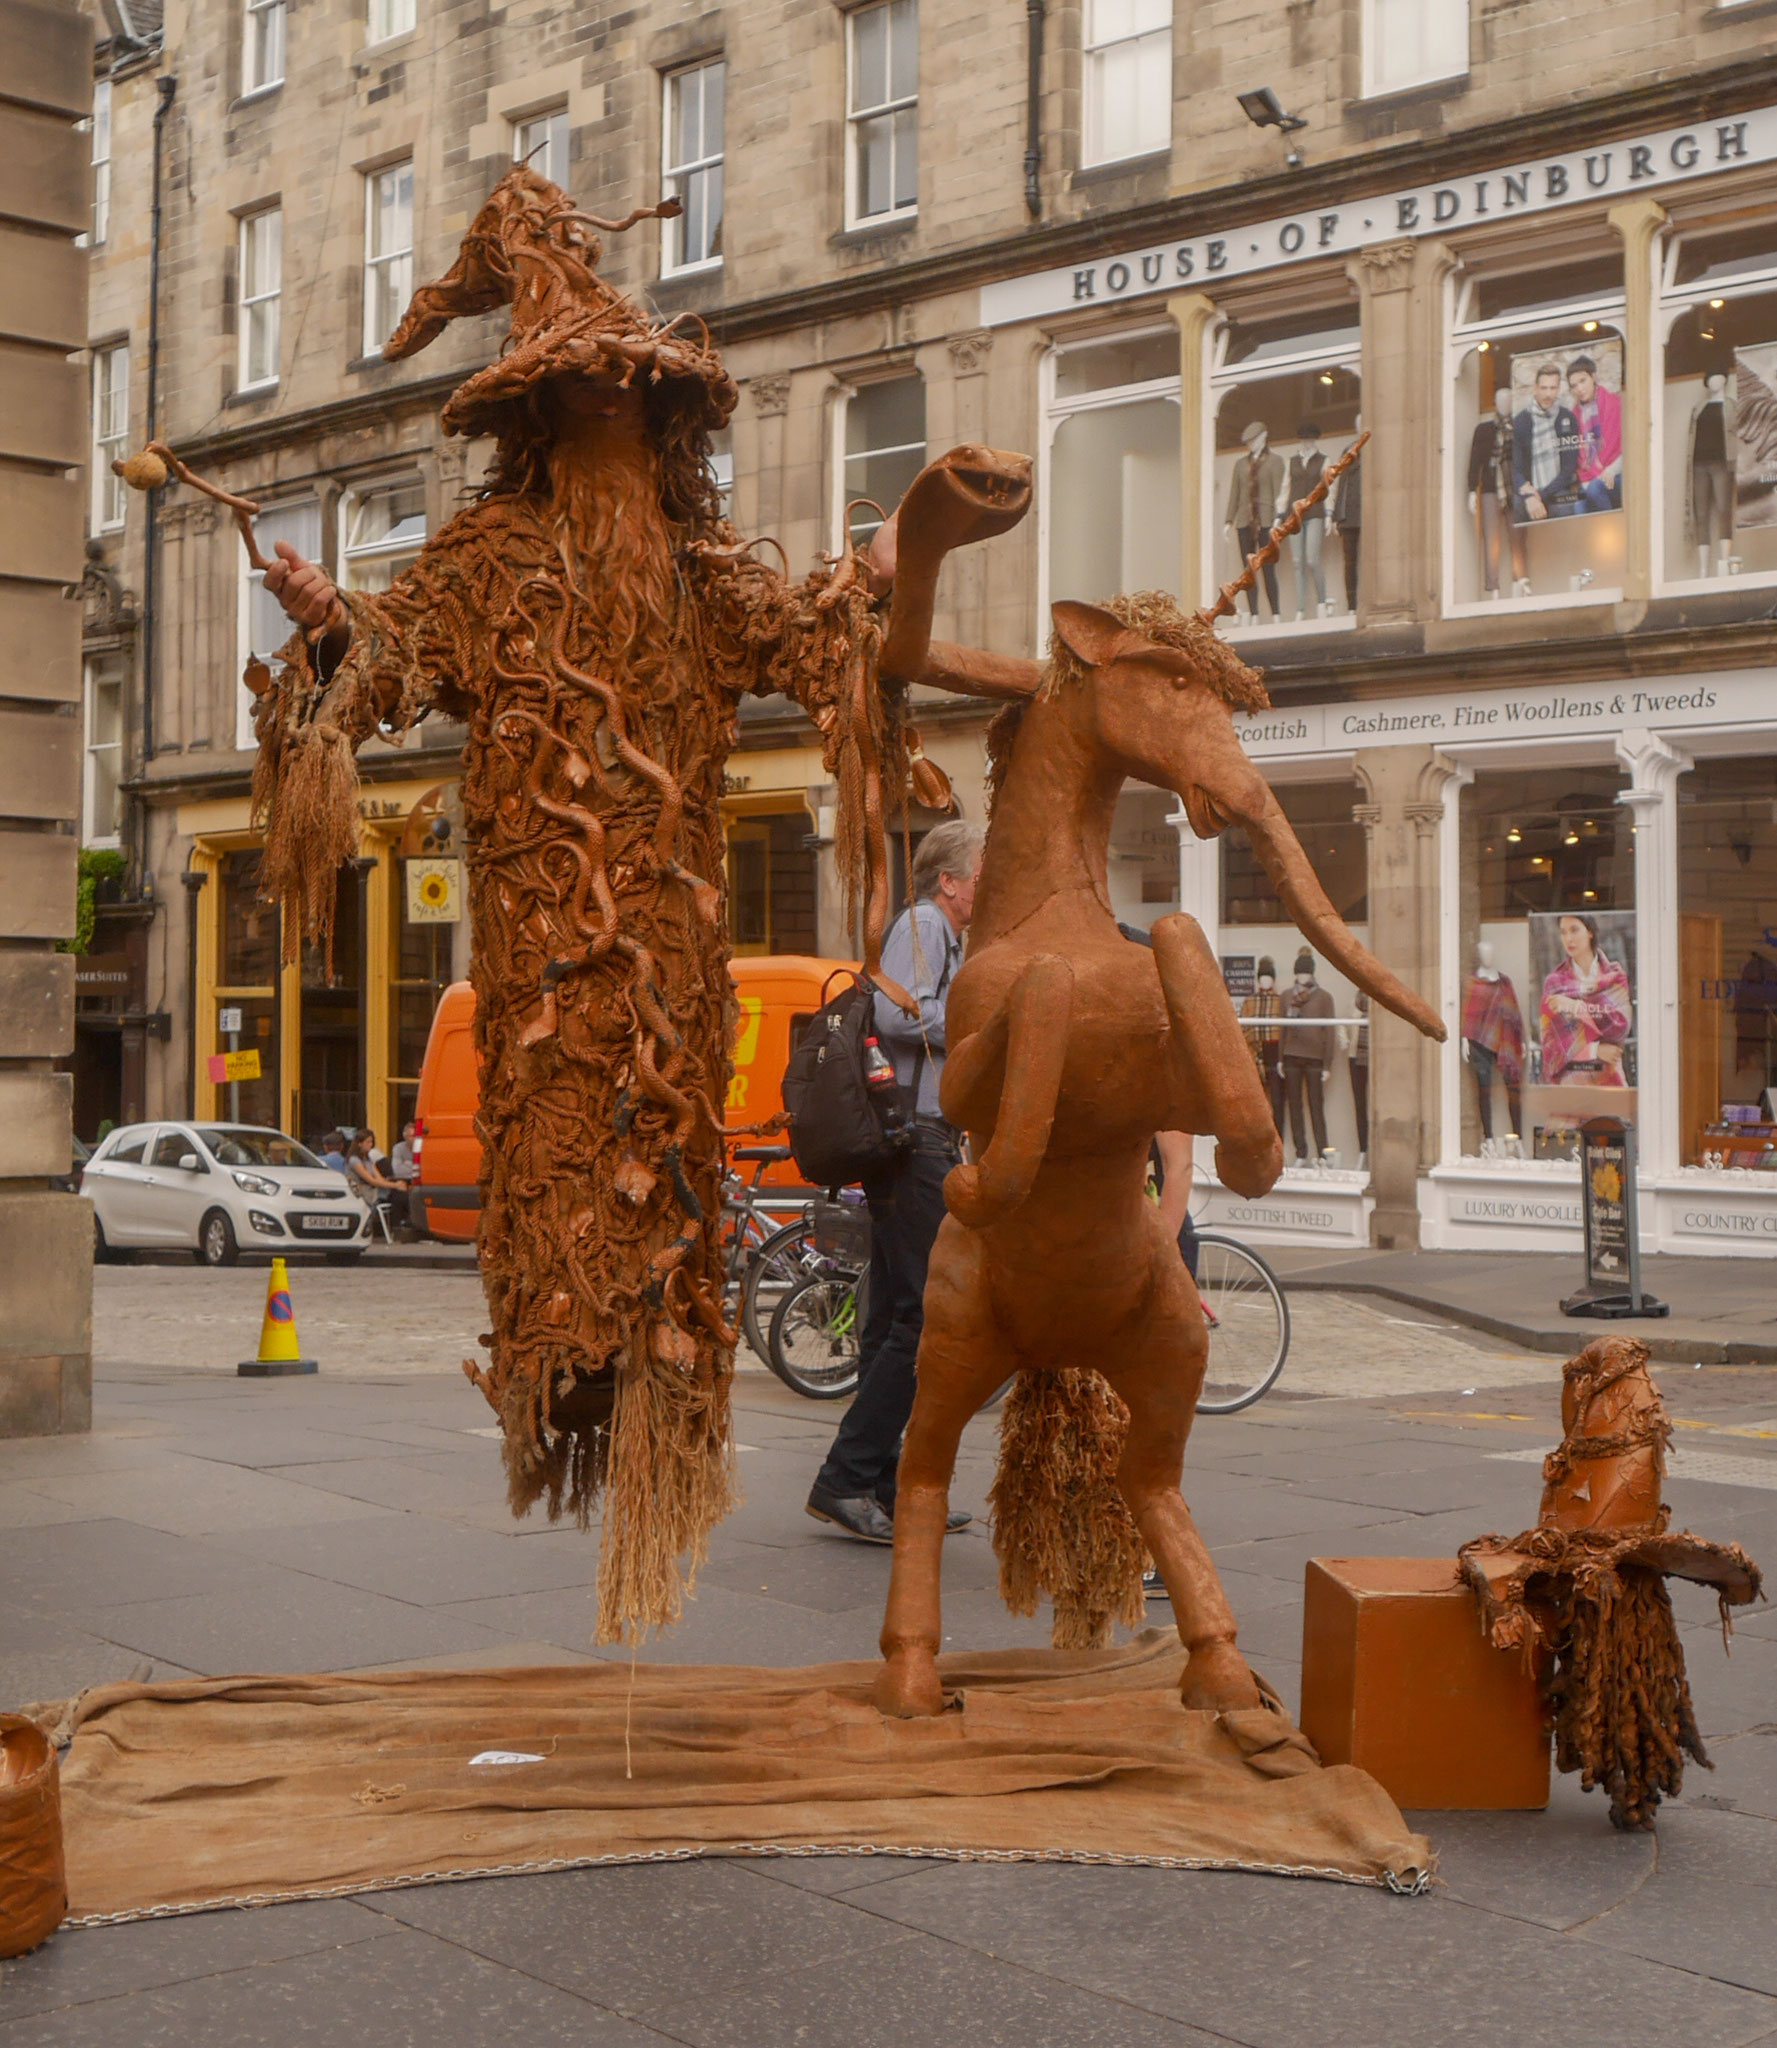 Straßenkunst Royal Mile